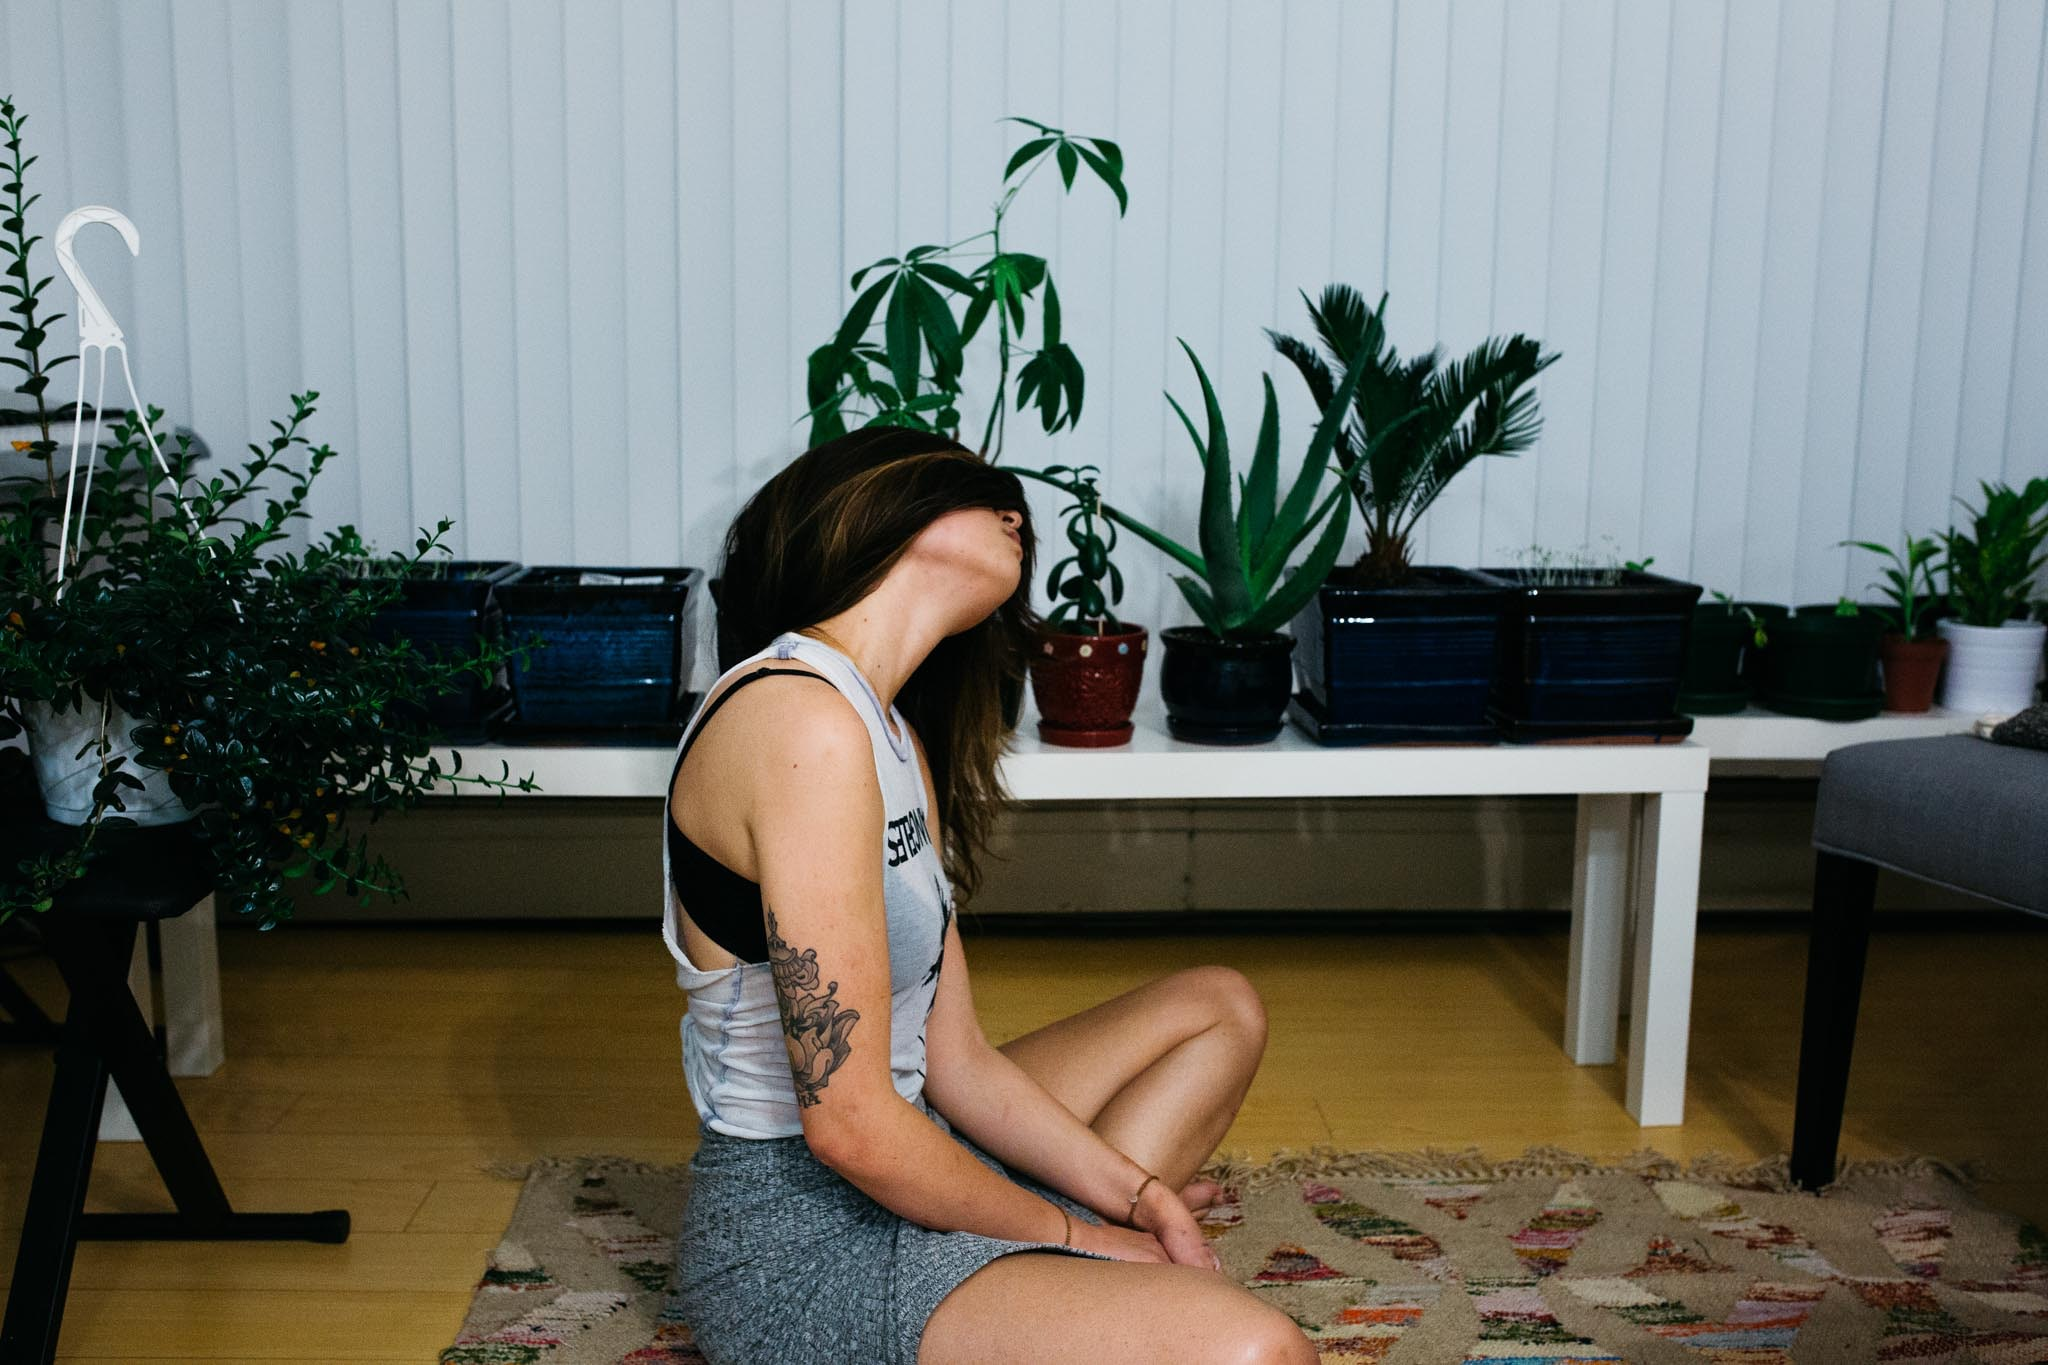 A brunette woman doing yoga in her living room that is filled with plants